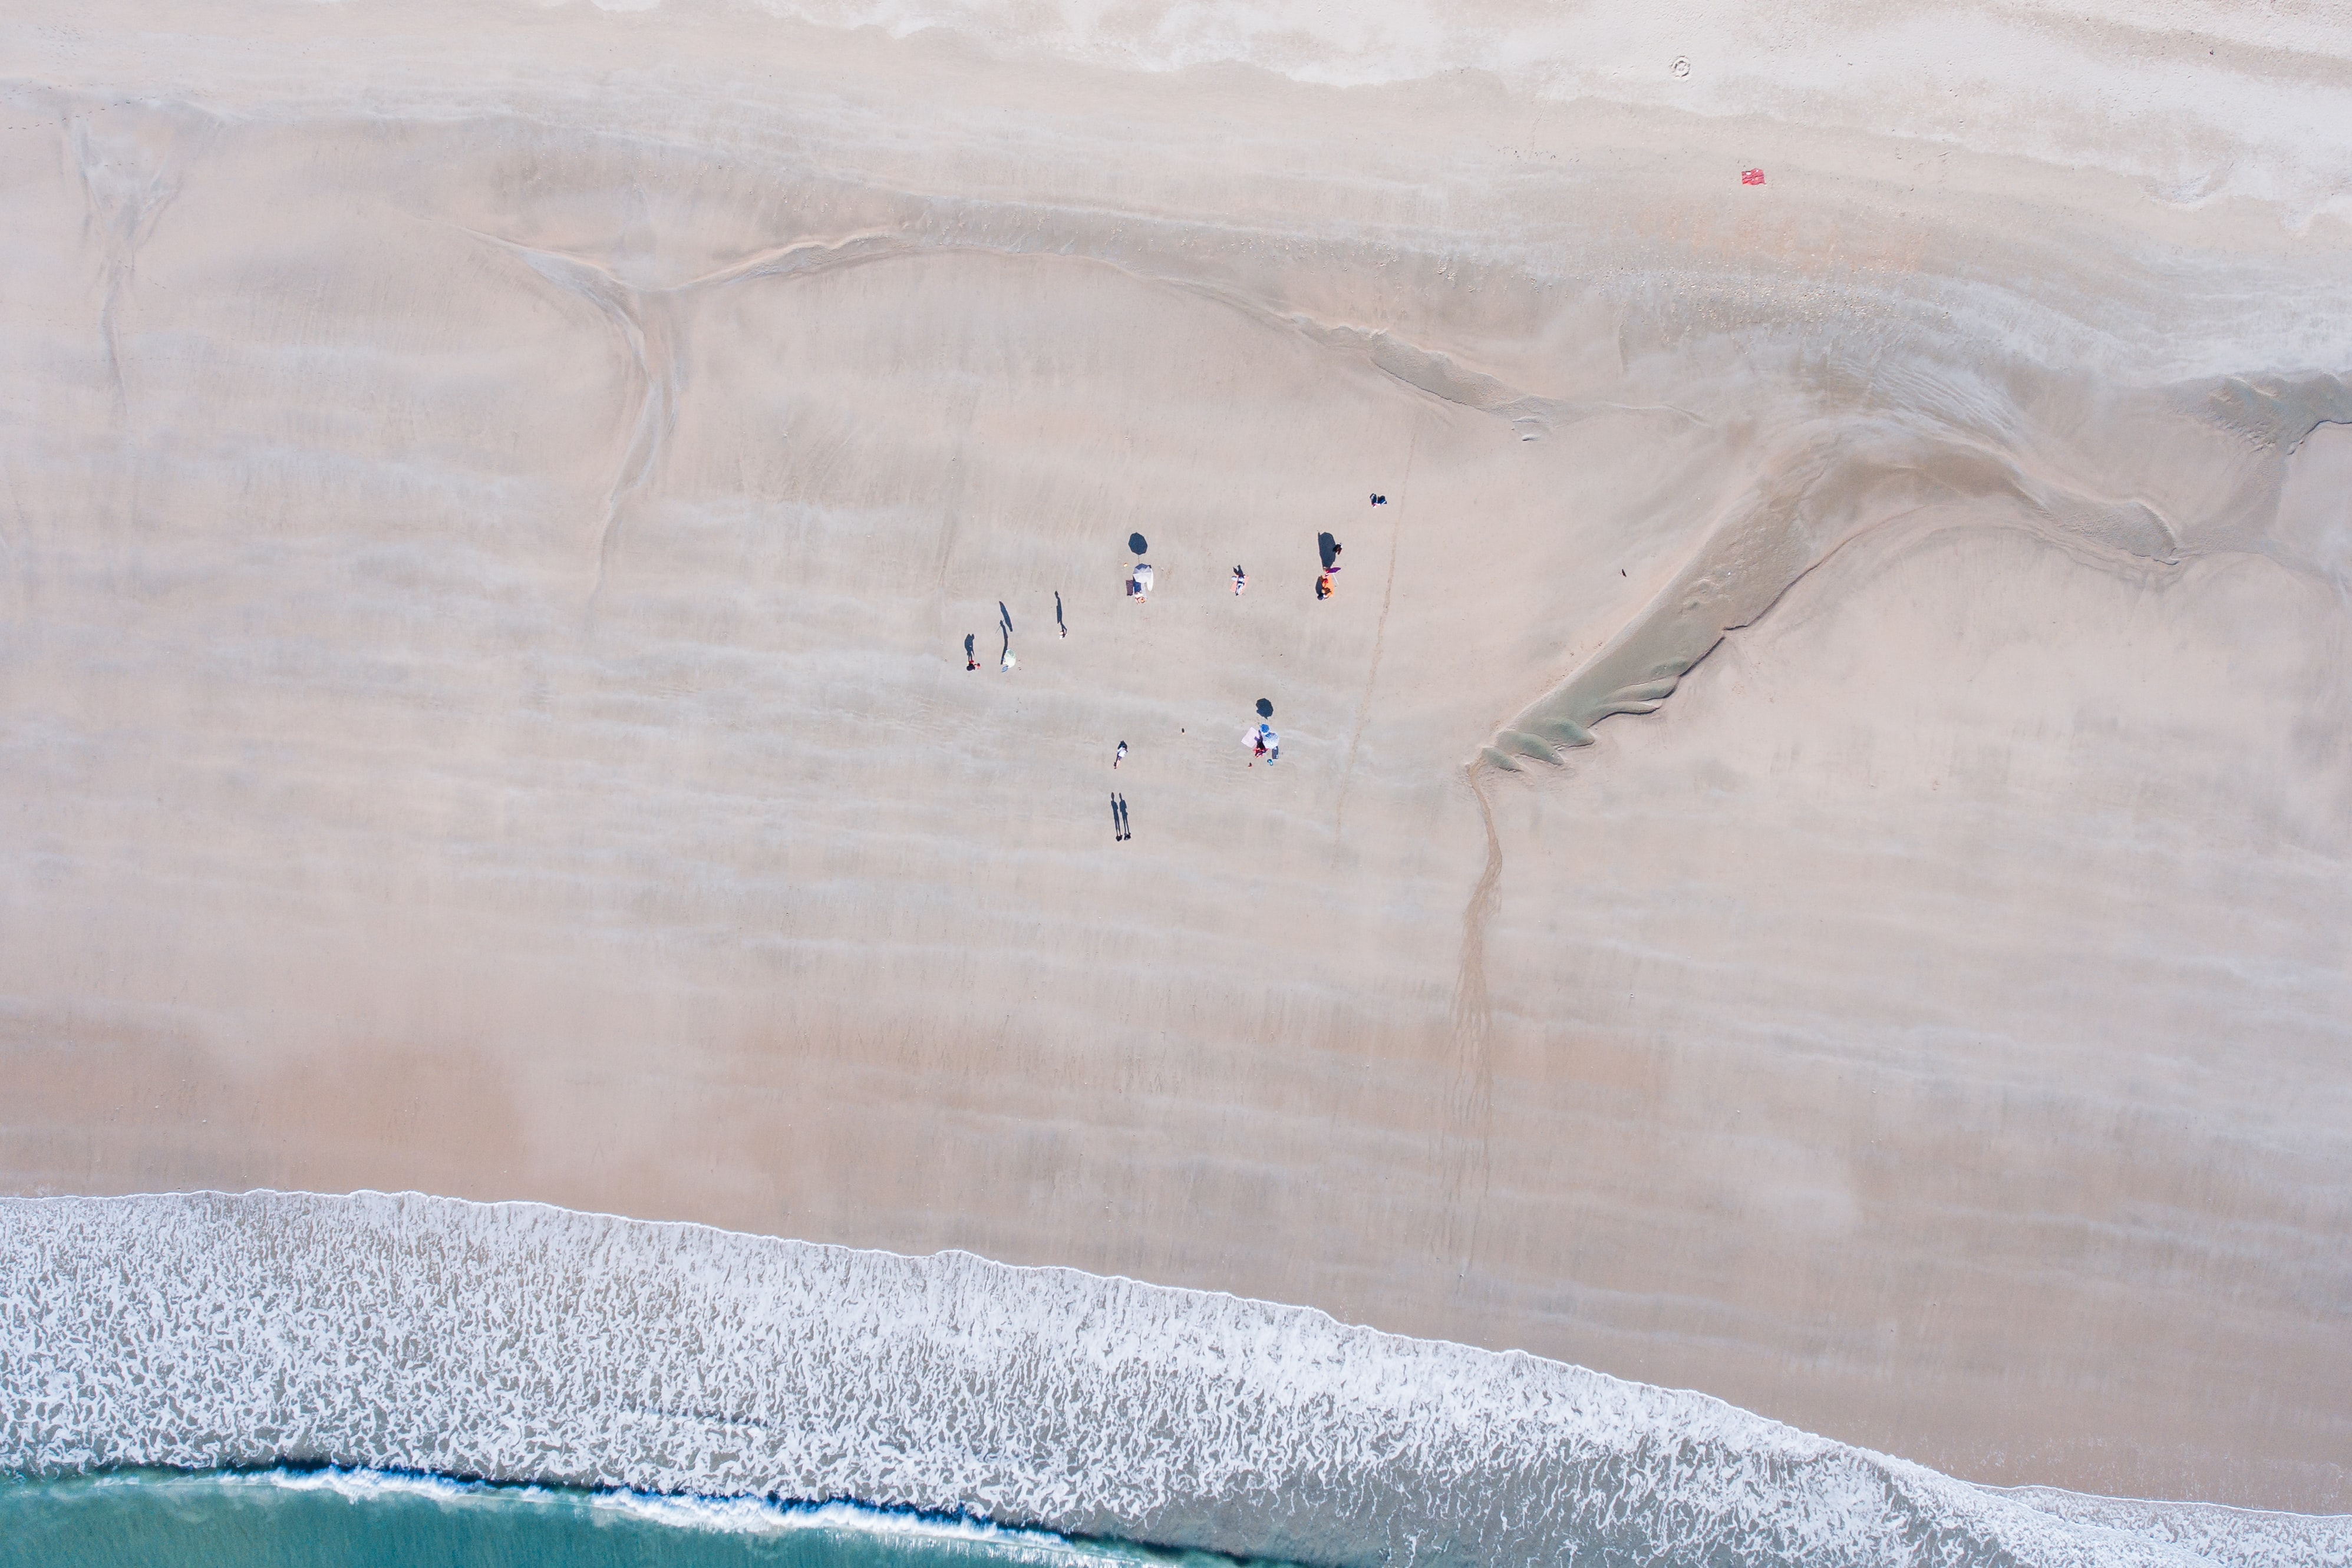 aerial view of group of people standing next to blue ocean water